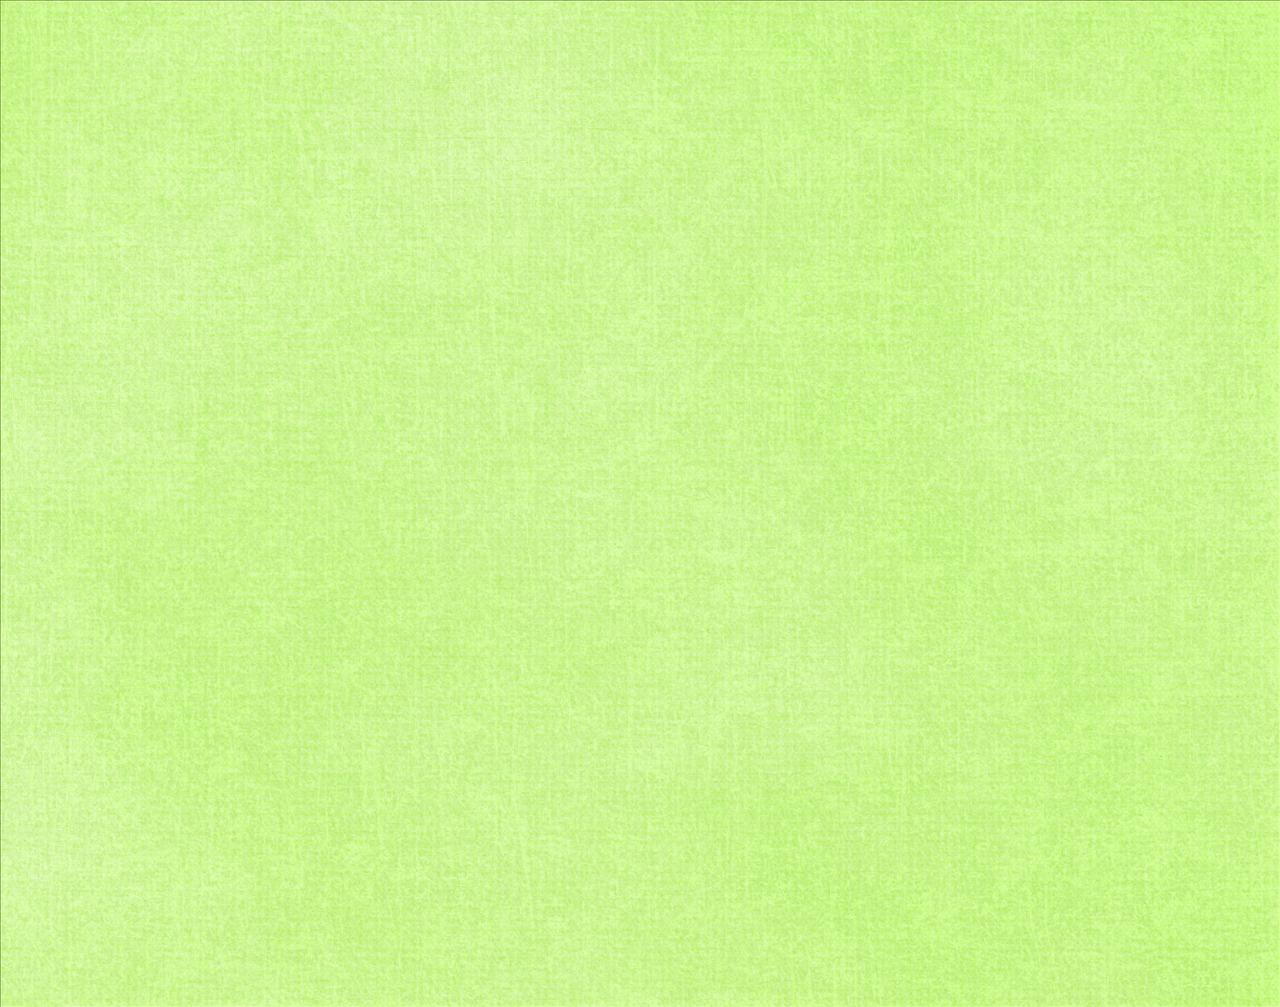 light green backgrounds wallpaper cave